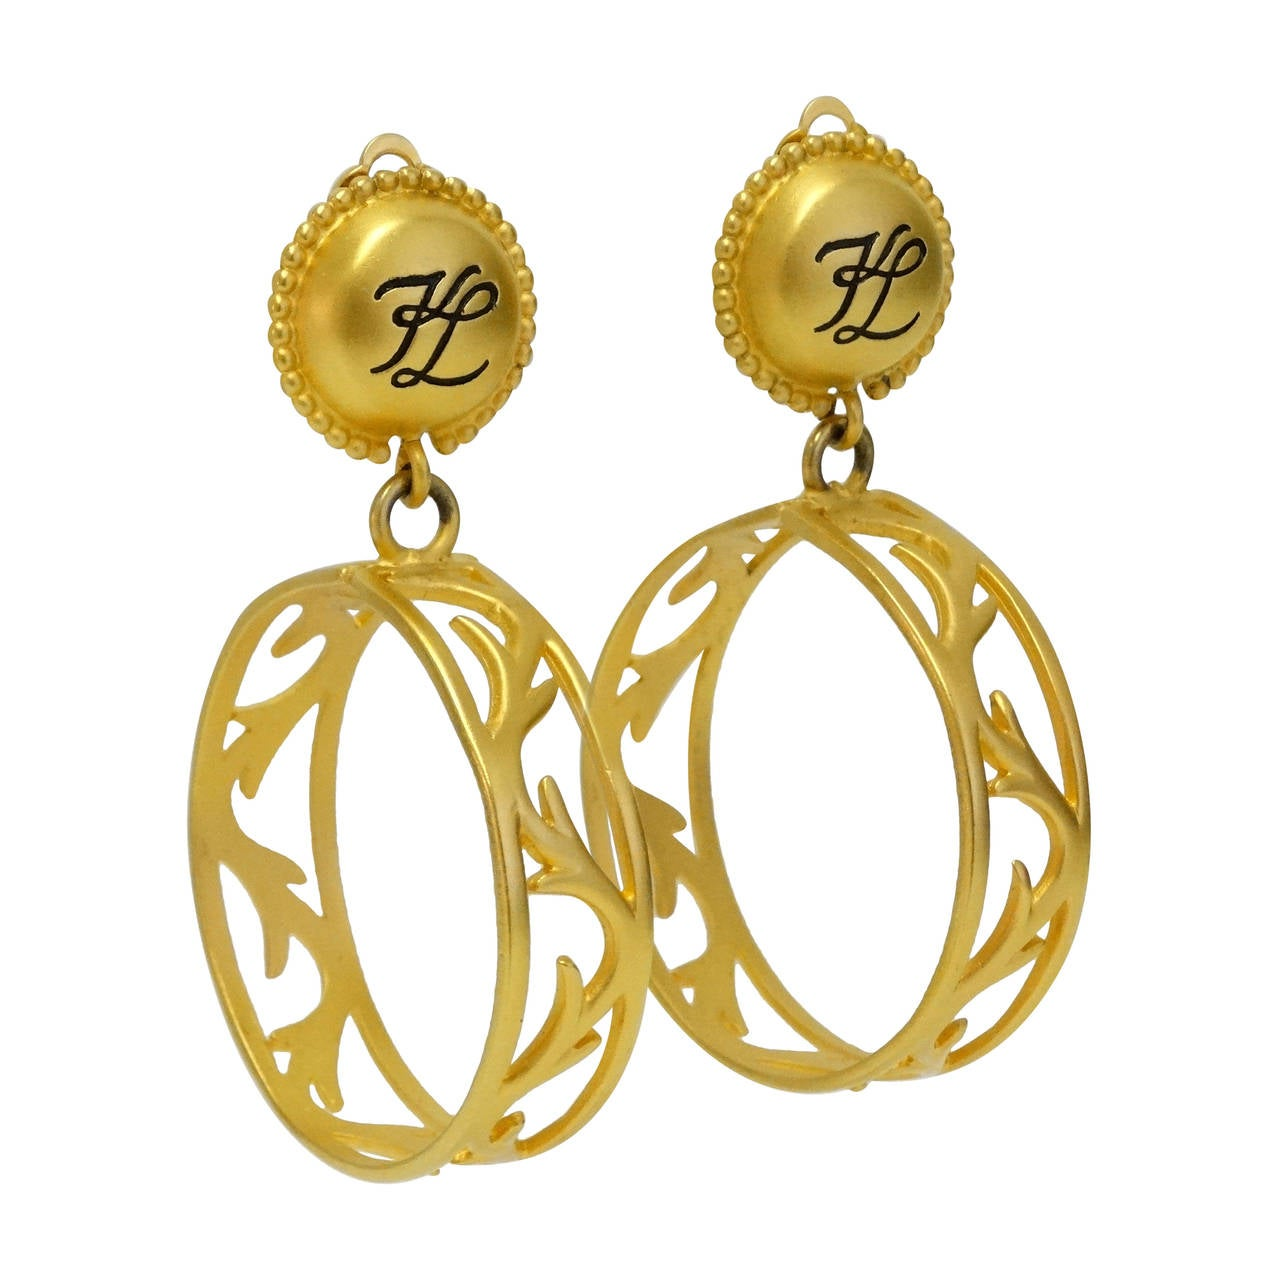 1980s Karl Lagerfeld Hoop Earrings For Sale